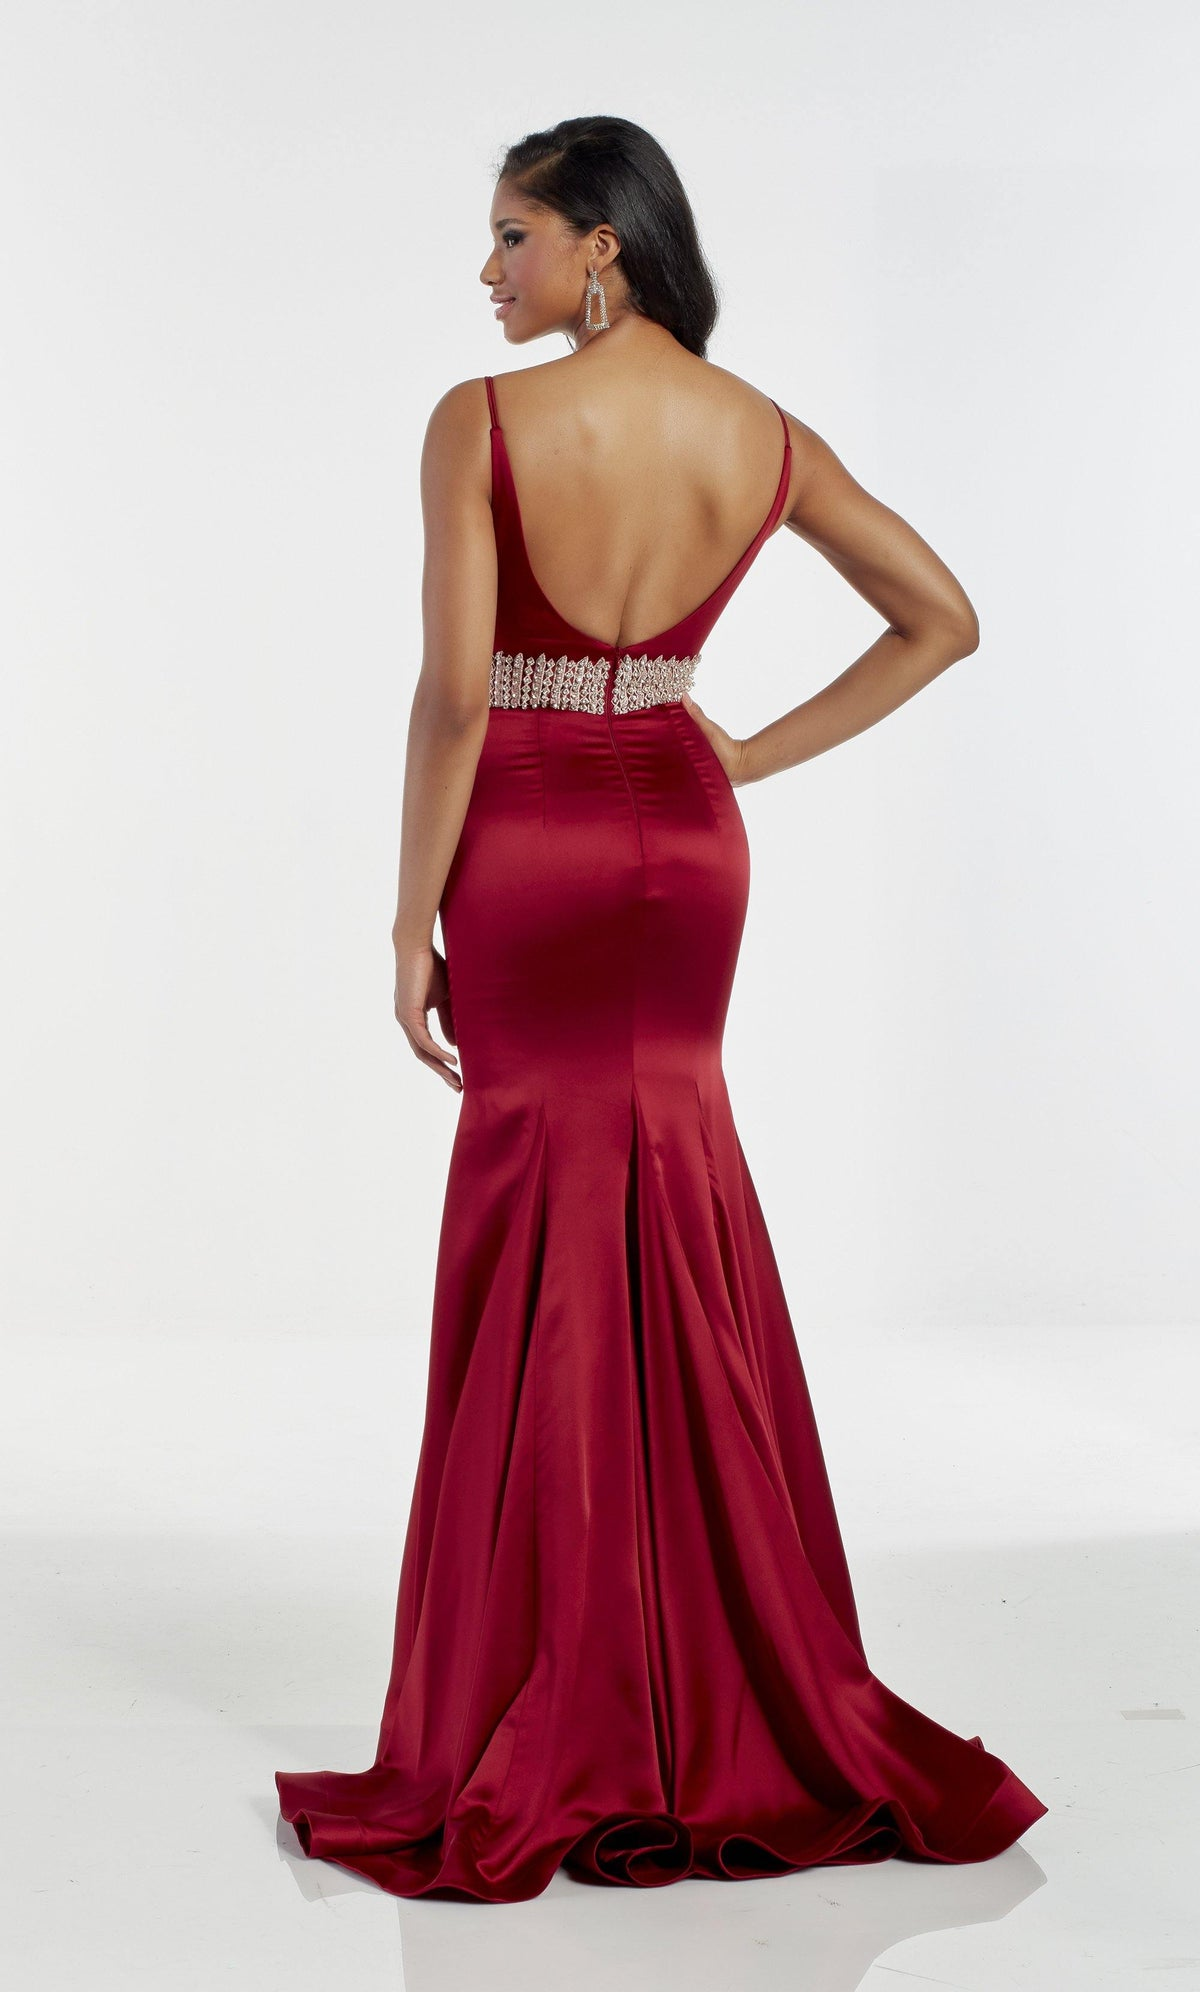 Red satin fit and flare wedding guest dress with a jewel embellished waistline and train